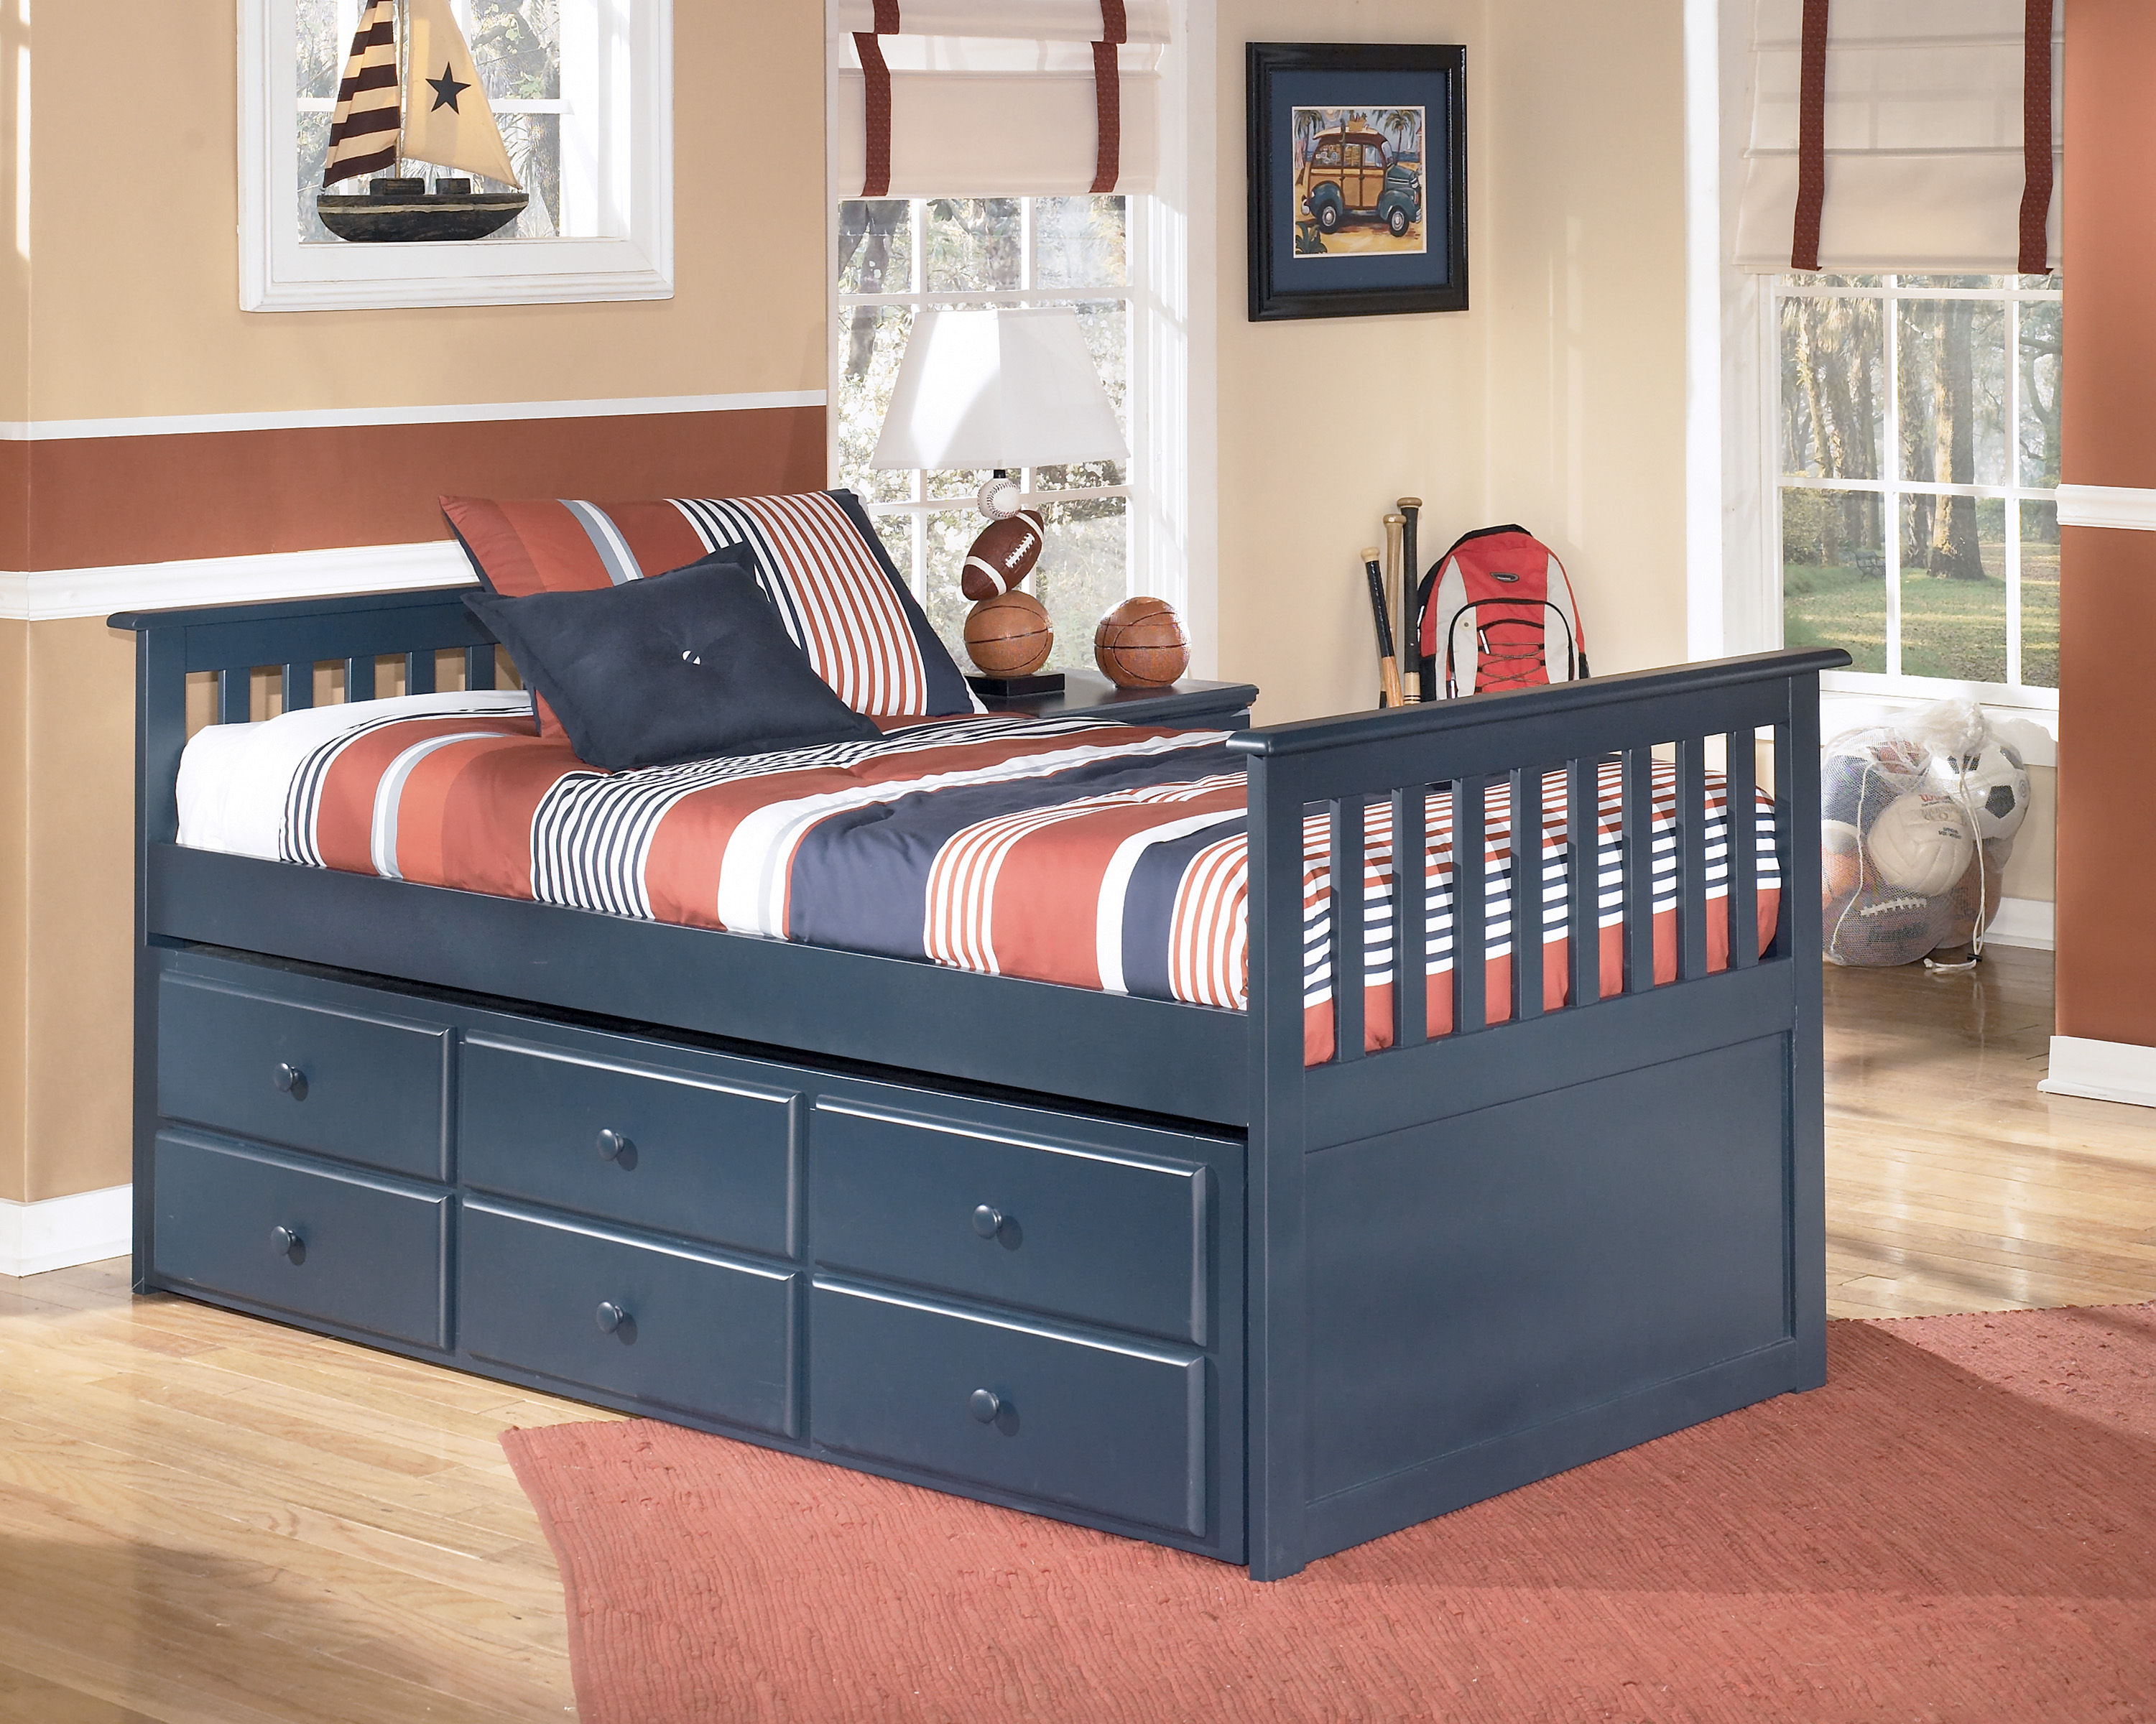 Ashley Furniture Leo Blue Leo Twin Bed With Trundle And